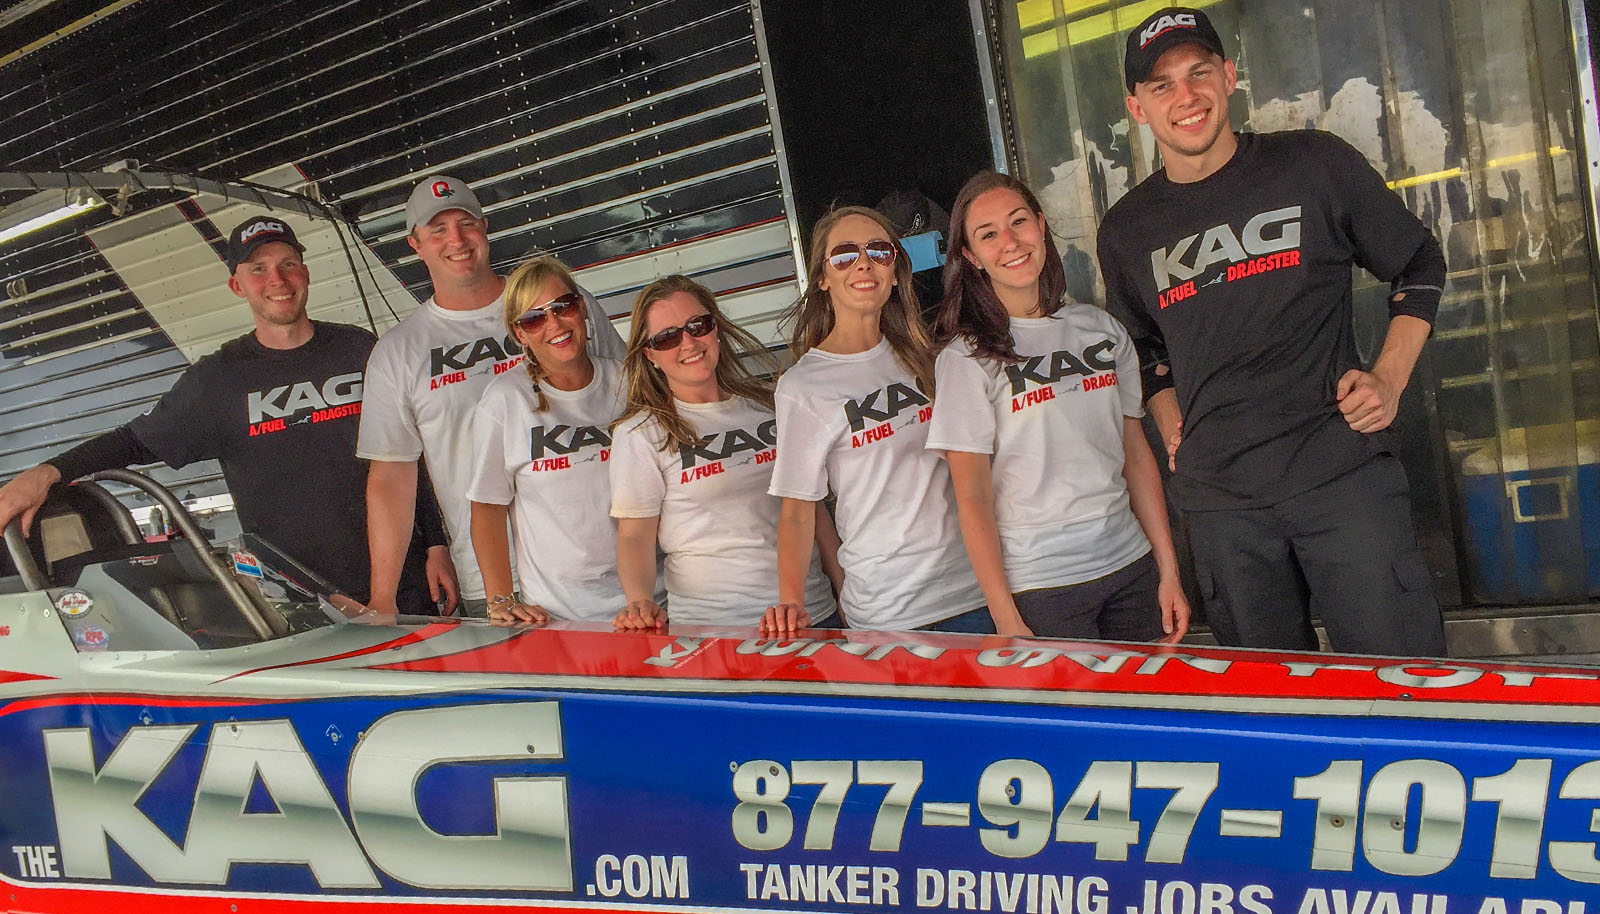 The Kenan Advantage Group team was on hand all weekend long recruiting new drivers and mechanics to join their growing workforce. To see all available KAG employment opportunities, please visit www.thekag.com/race.